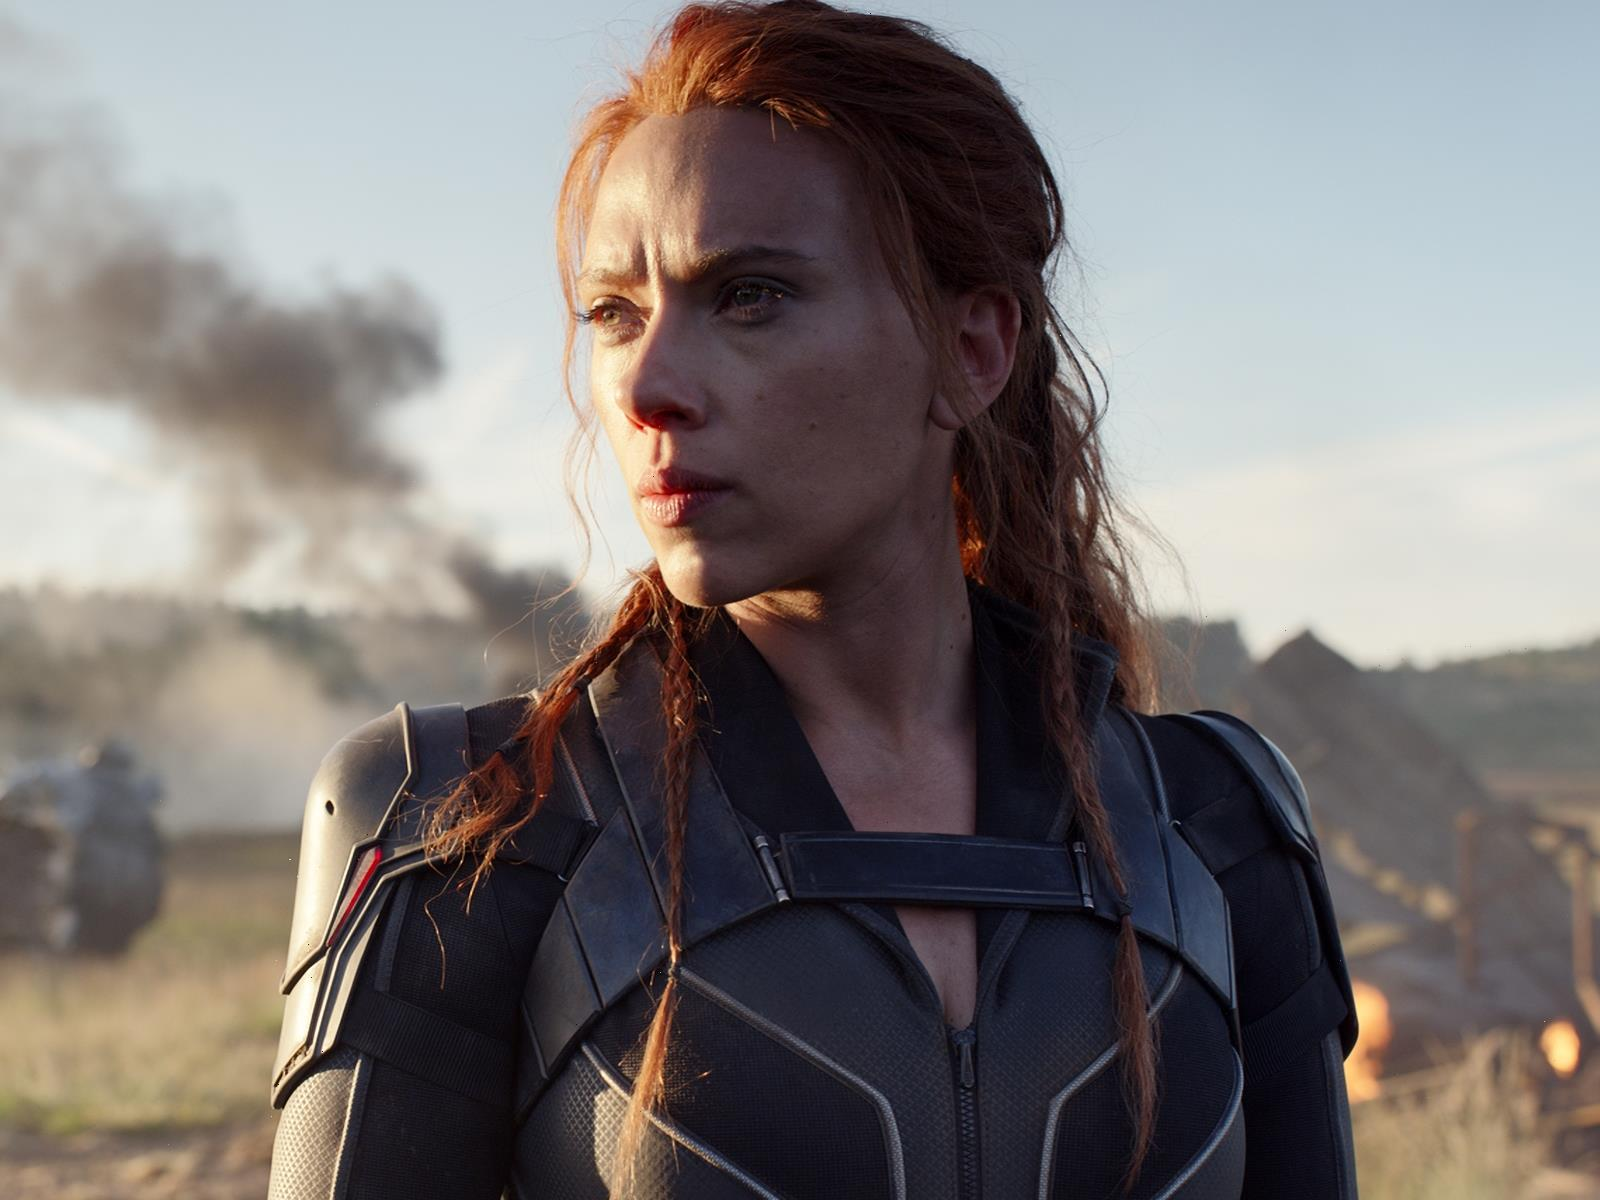 What to Watch in July: 'Black Widow,' 'Space Jam,' 'Ted Lasso' and New Paul McCartney Doc